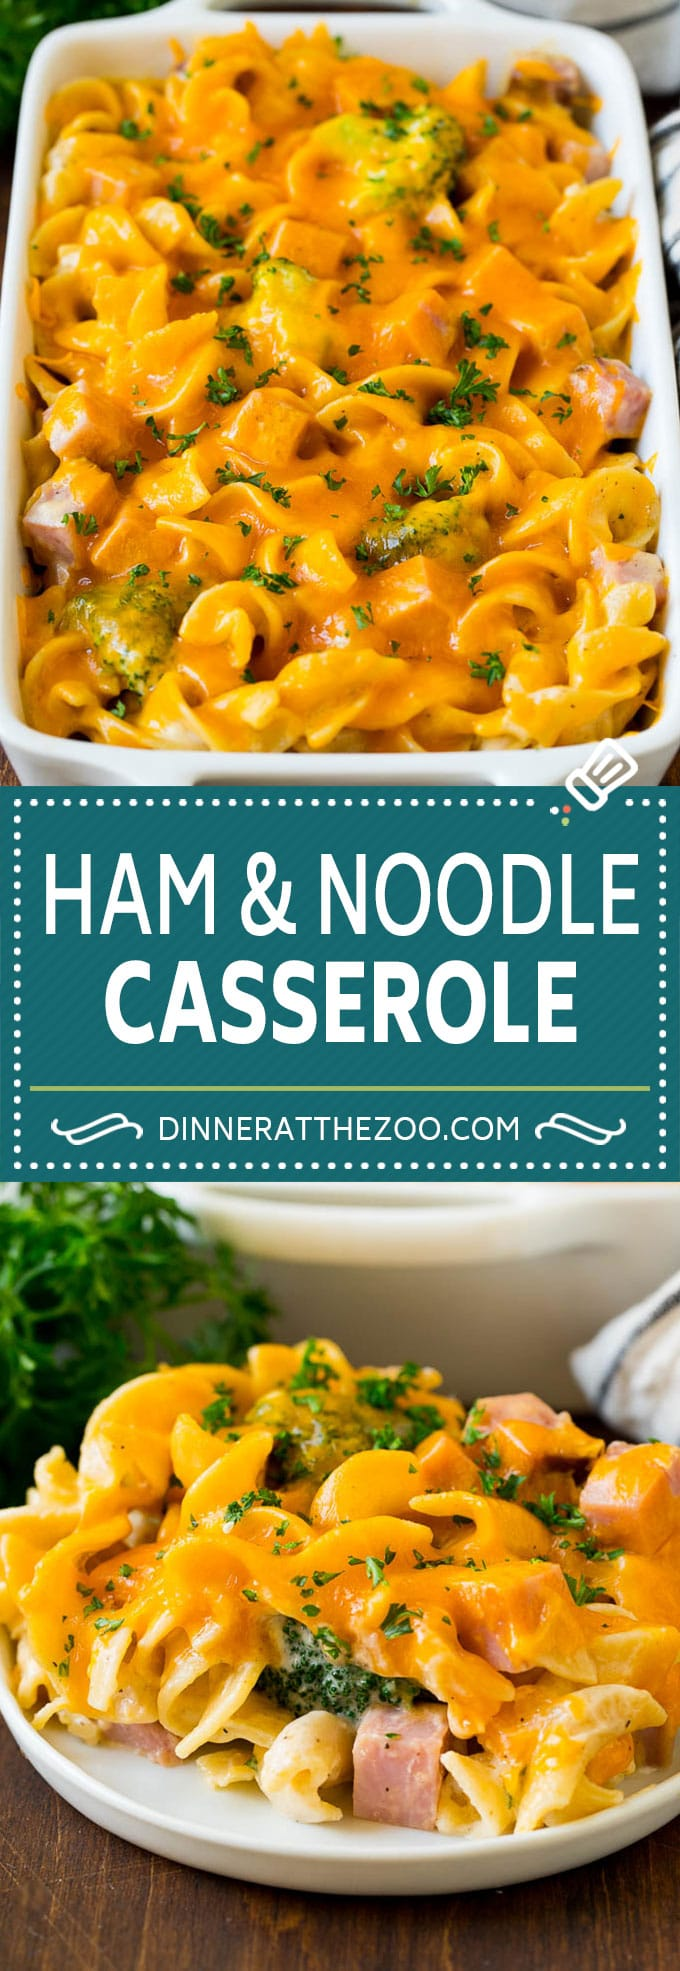 This ham casserole is egg noodles, broccoli and diced ham in a creamy sauce, all topped with cheese and baked to golden brown perfection.